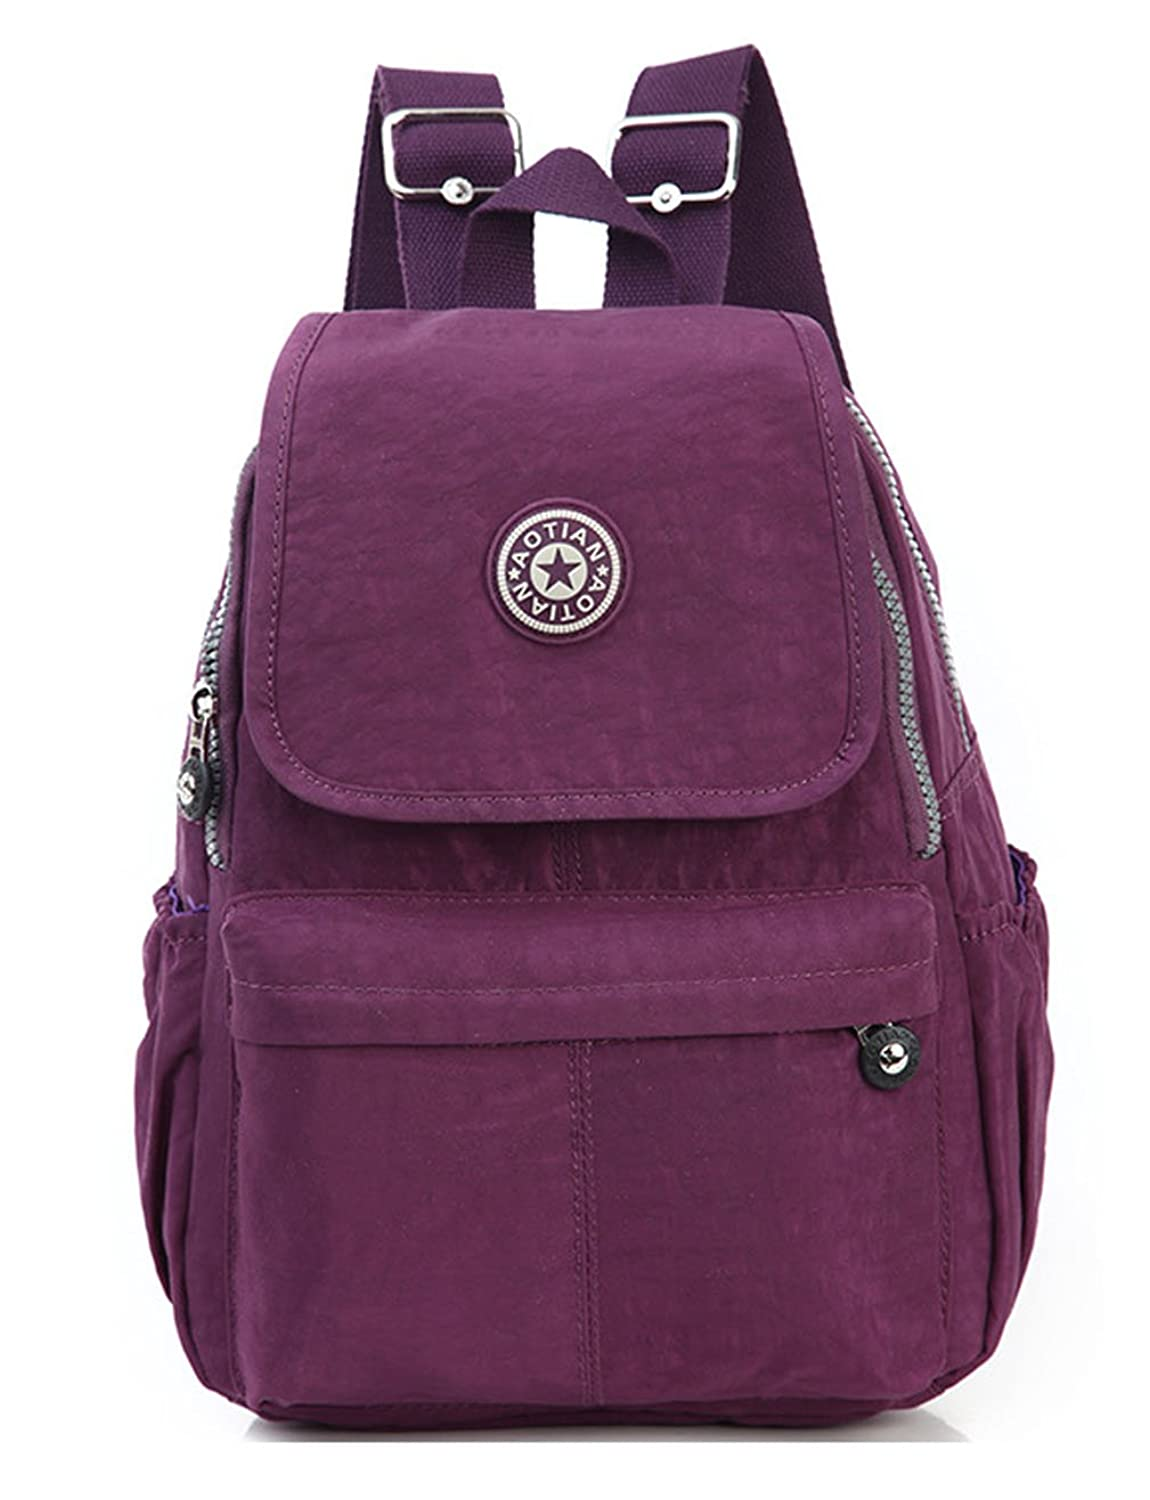 Keshi Canvas Cool Most Durable Packable Handy Lightweight Travel Backpack Daypack